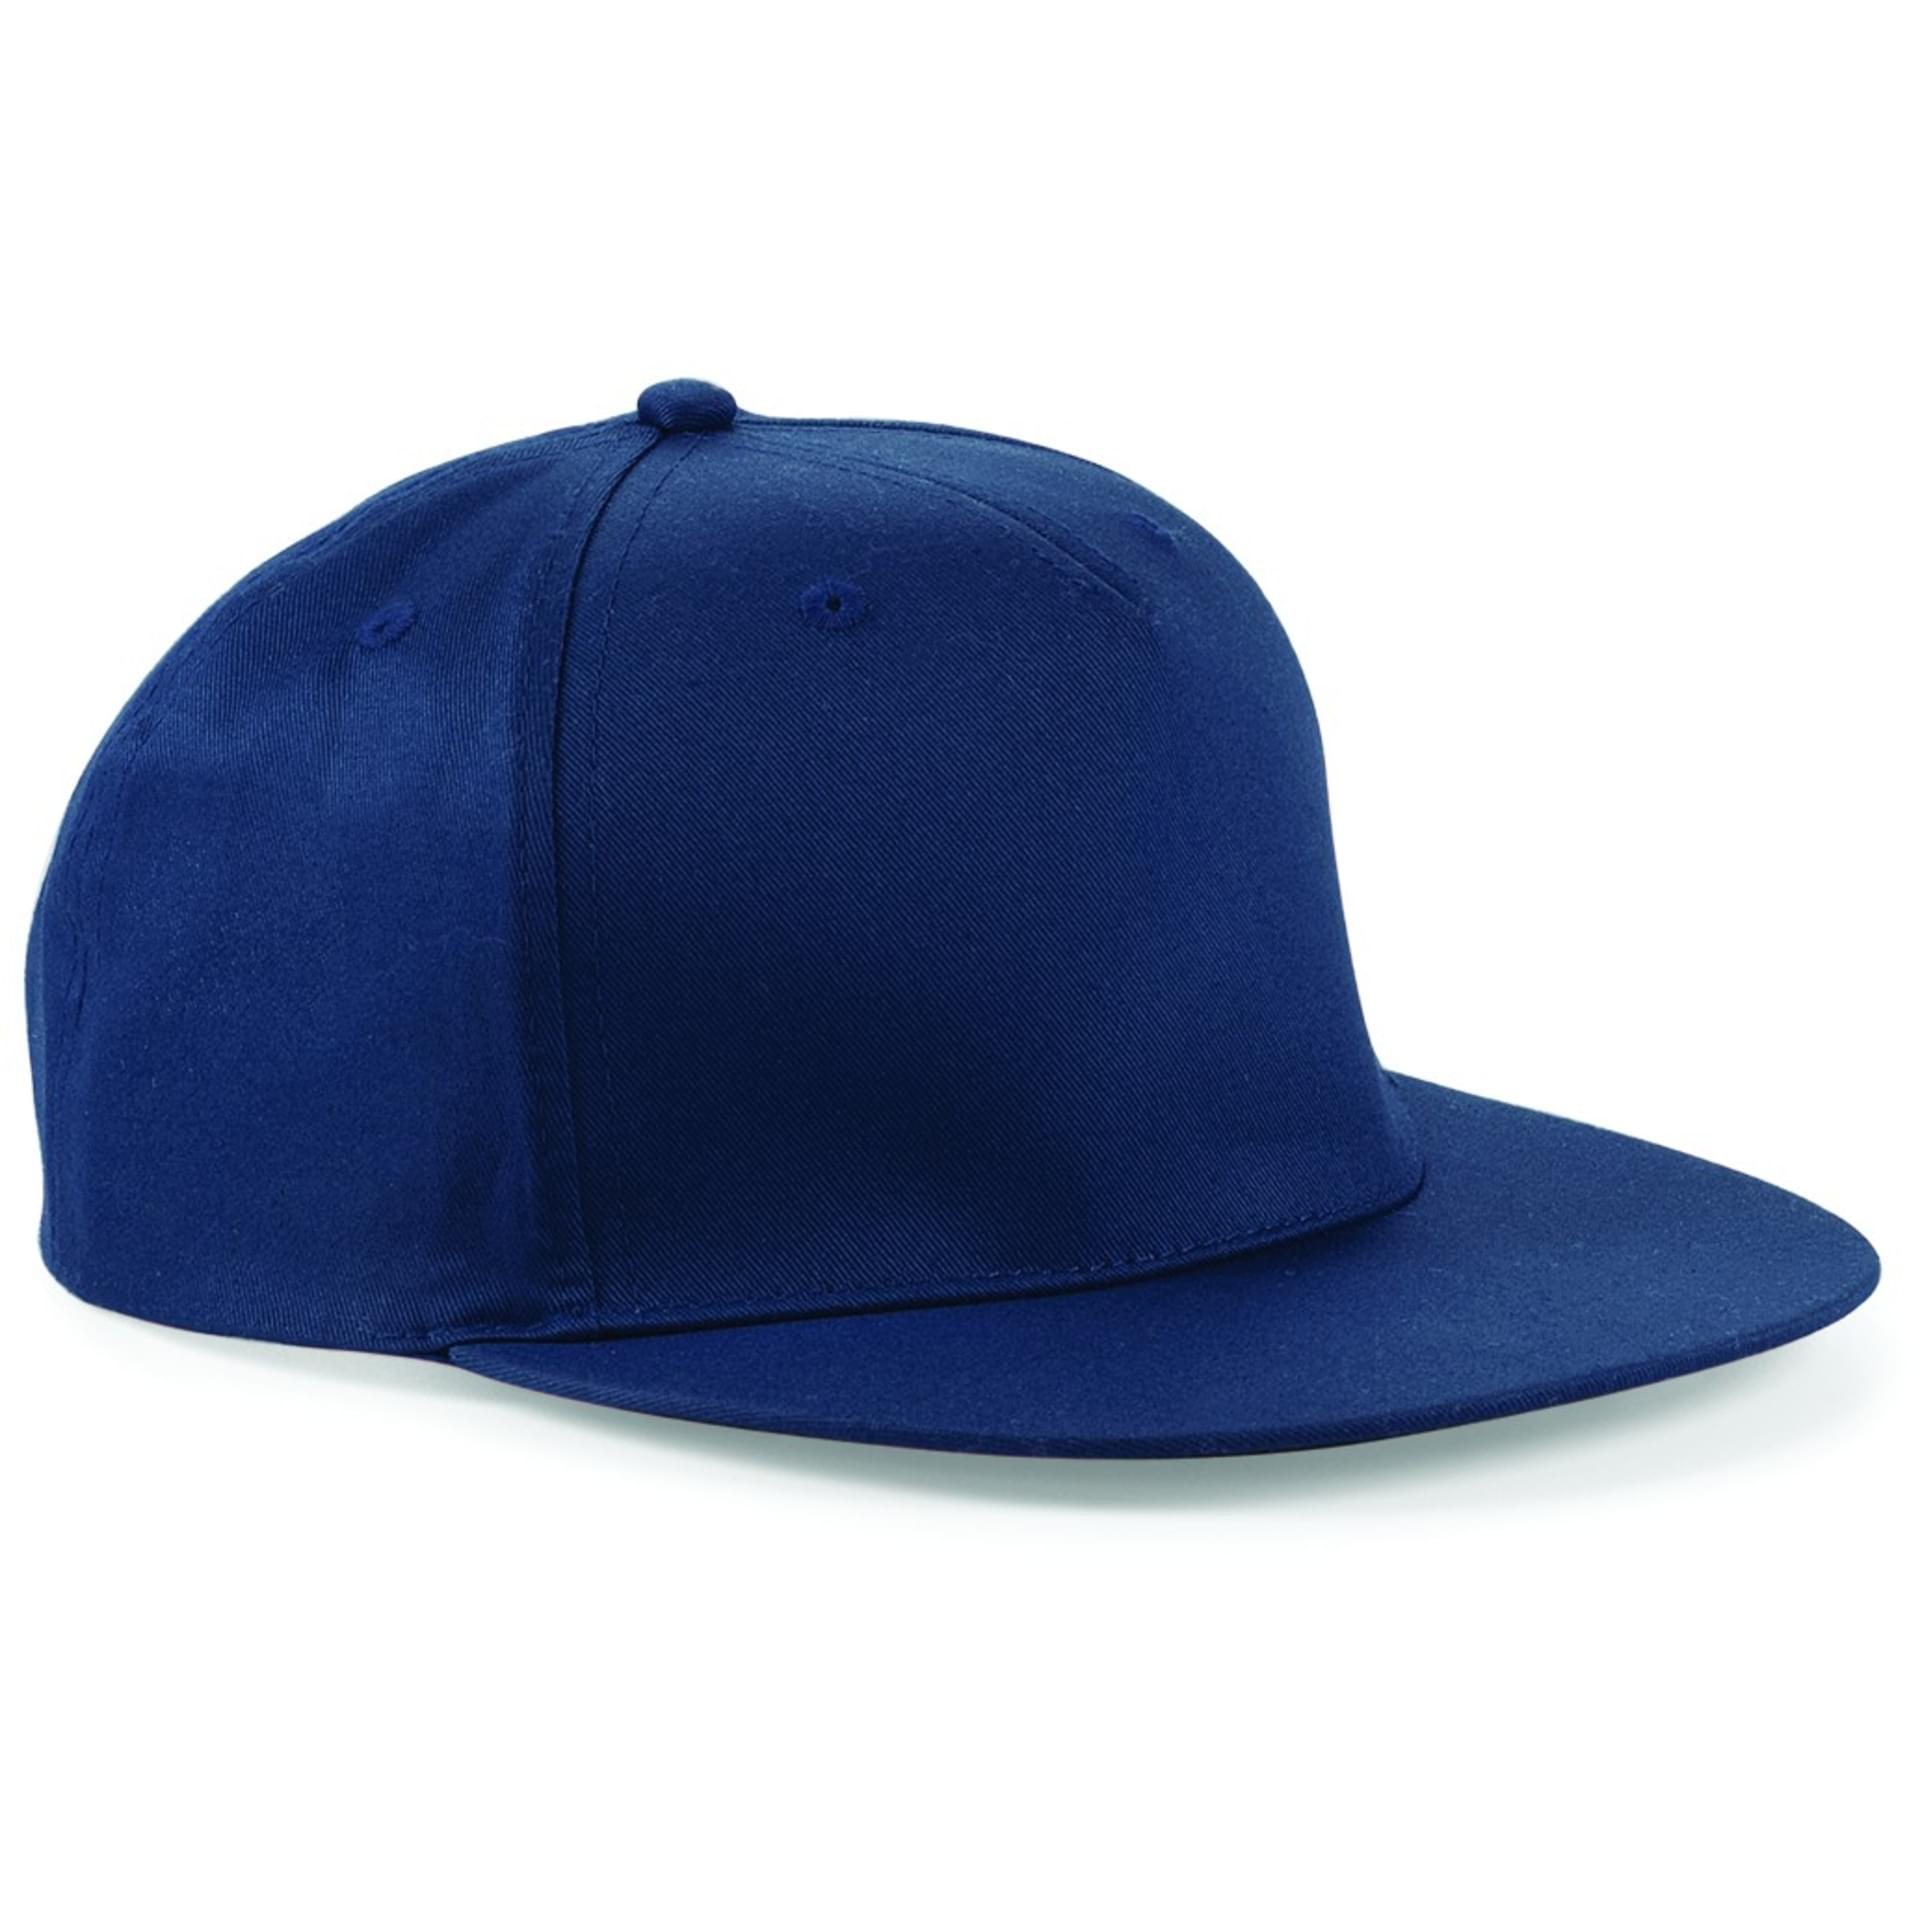 35f3dd335aedf ... CASQUETTE STYLE RAPPEUR 5 PANNEAUX Beechfield french_navy. Couleur  french_navy